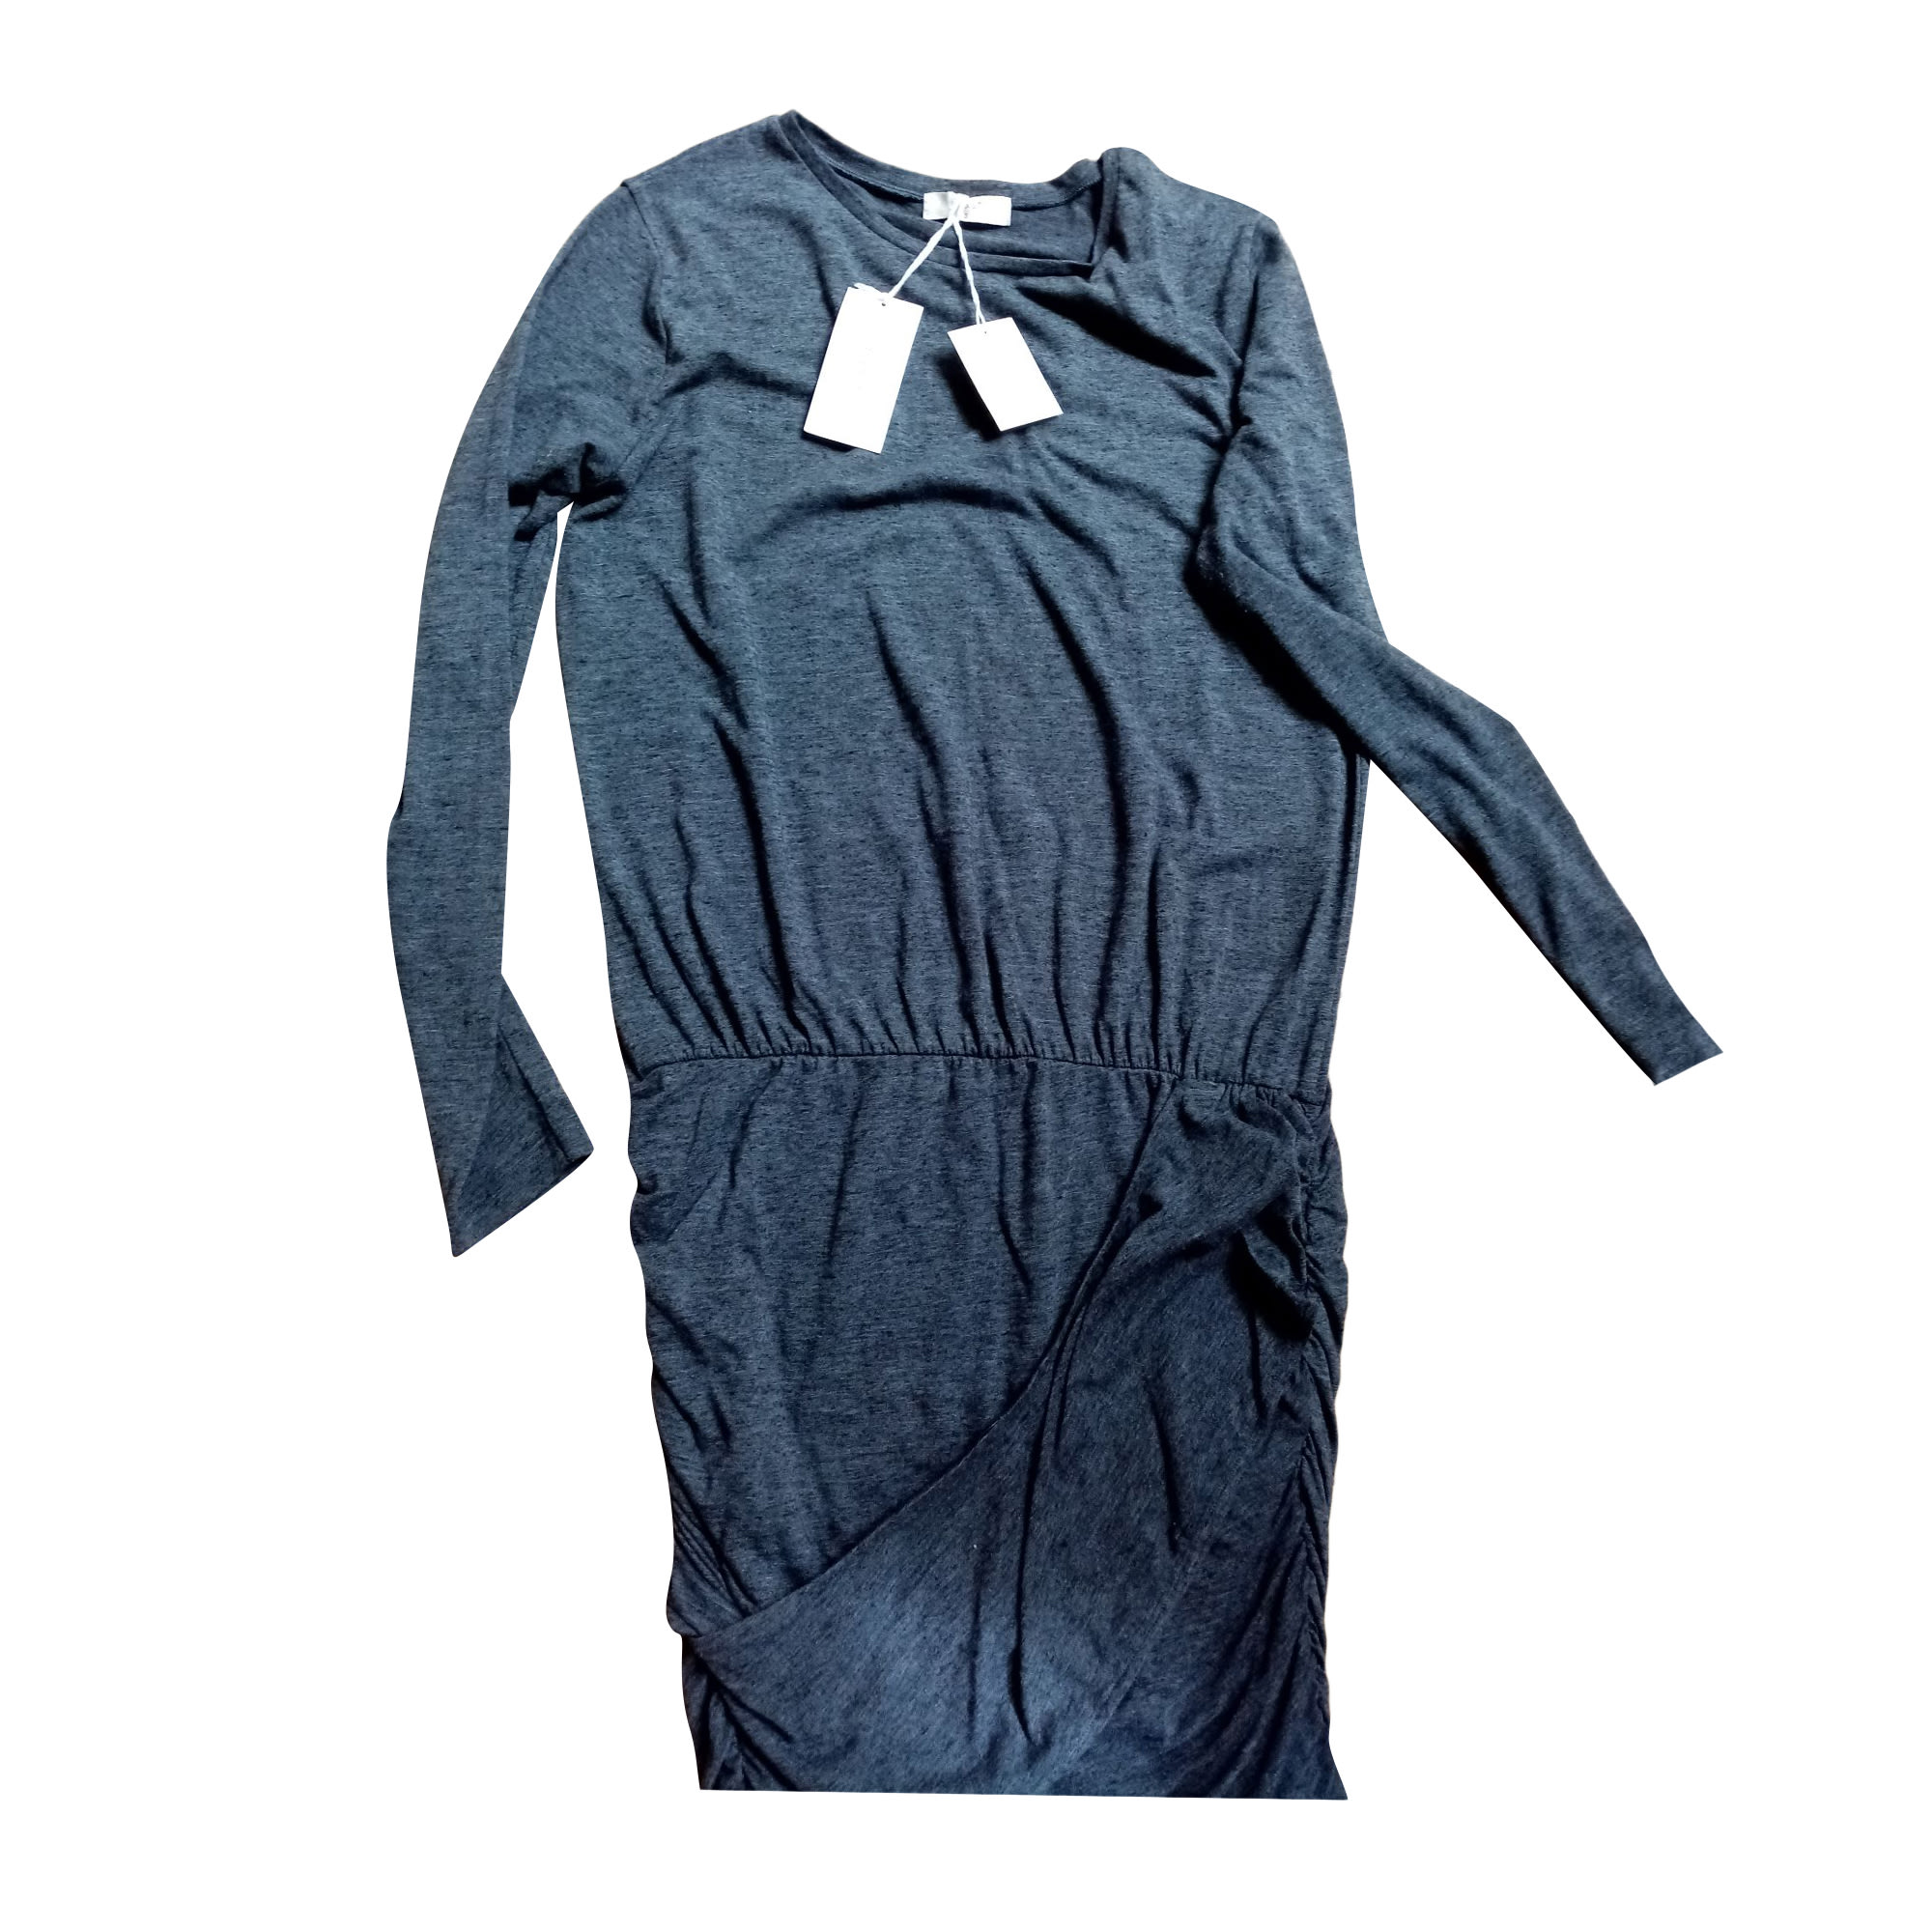 Robe mi-longue BA&SH Gris, anthracite